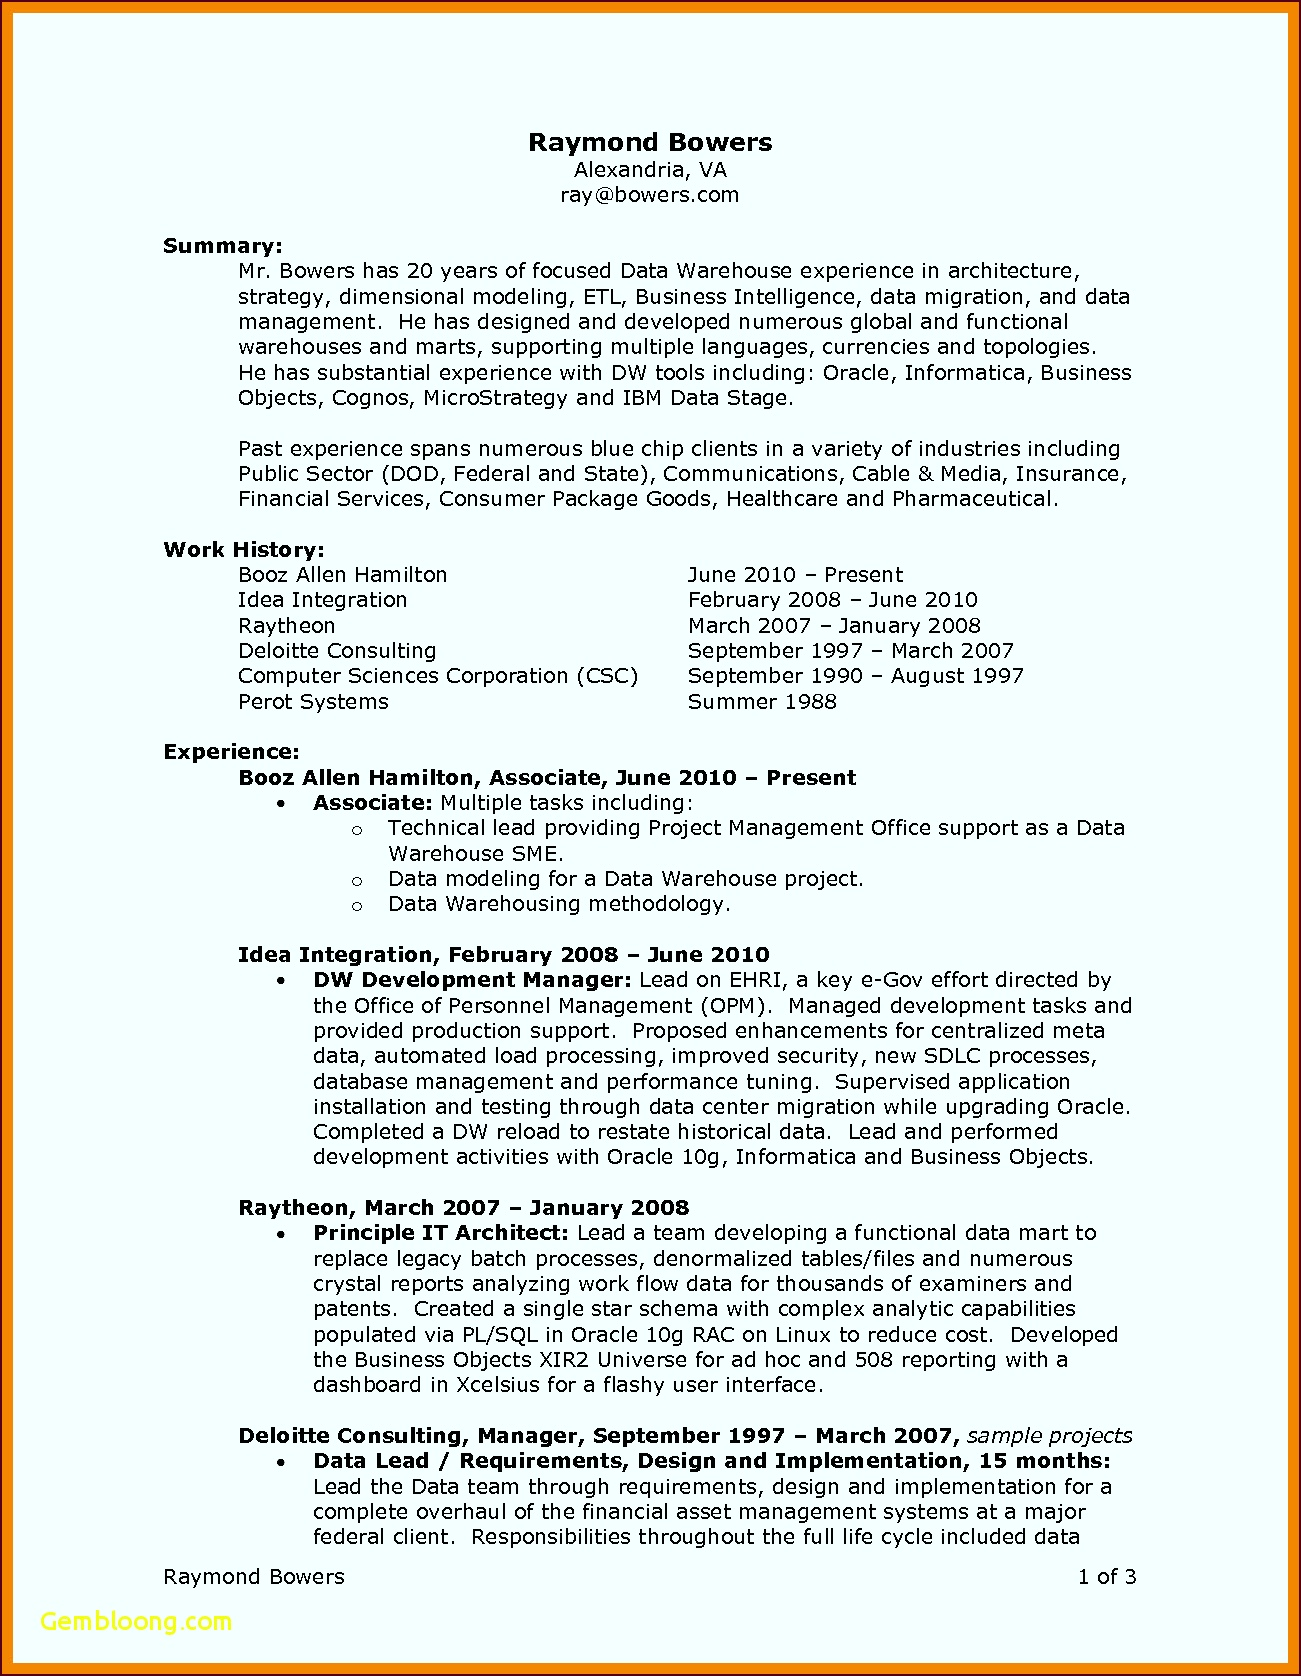 Word 2010 Resume Template Fresh Best Ideas 6 Sample Warehouse Resumes Od Specialist Sample Beautiful Business Letter riewa